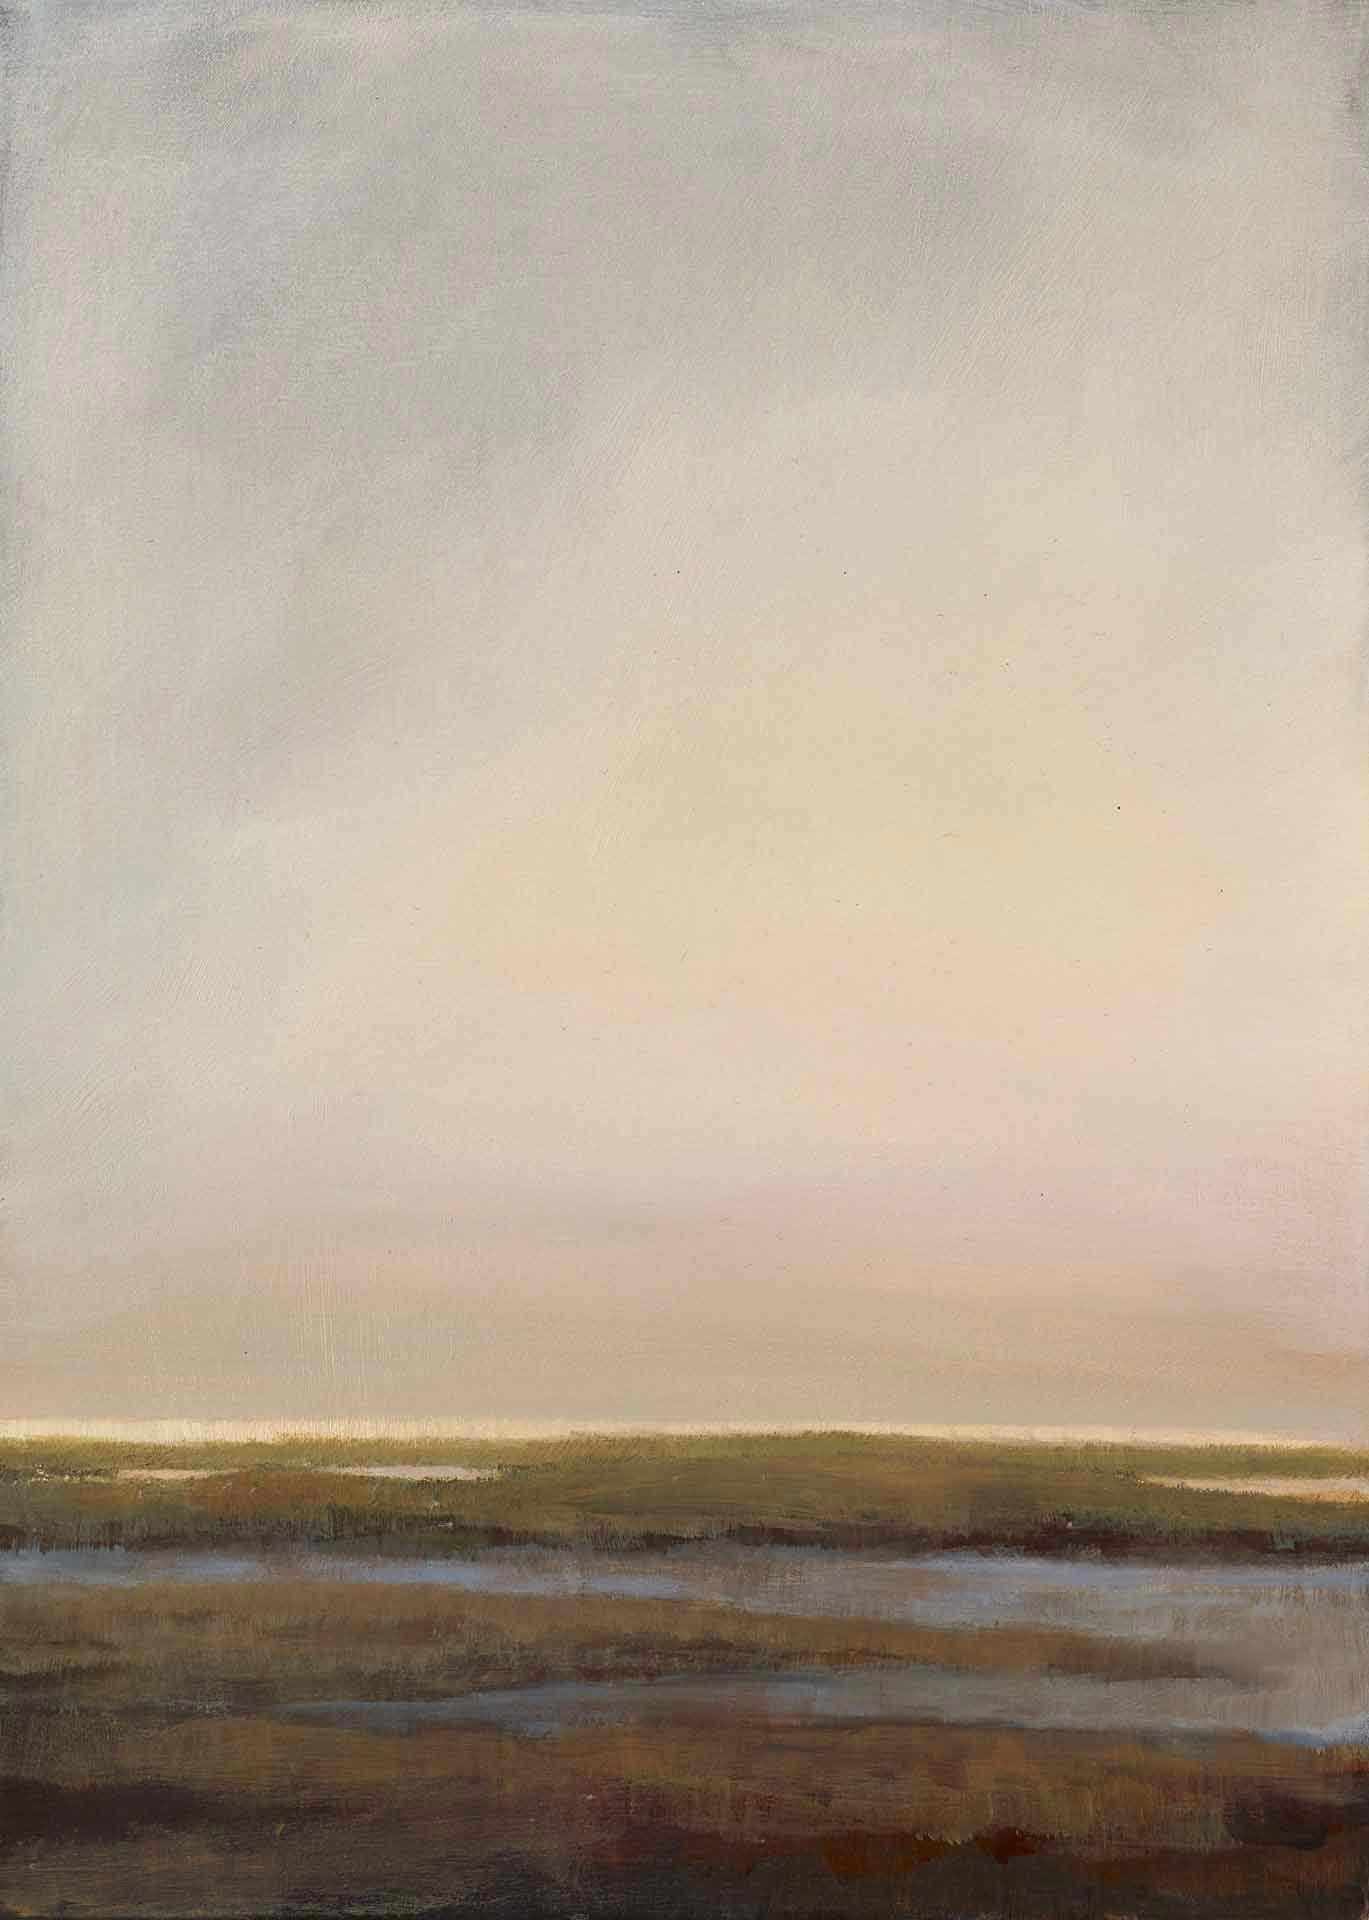 Evening Light Over South Uist - Landscape Painting By Victoria Orr Ewing